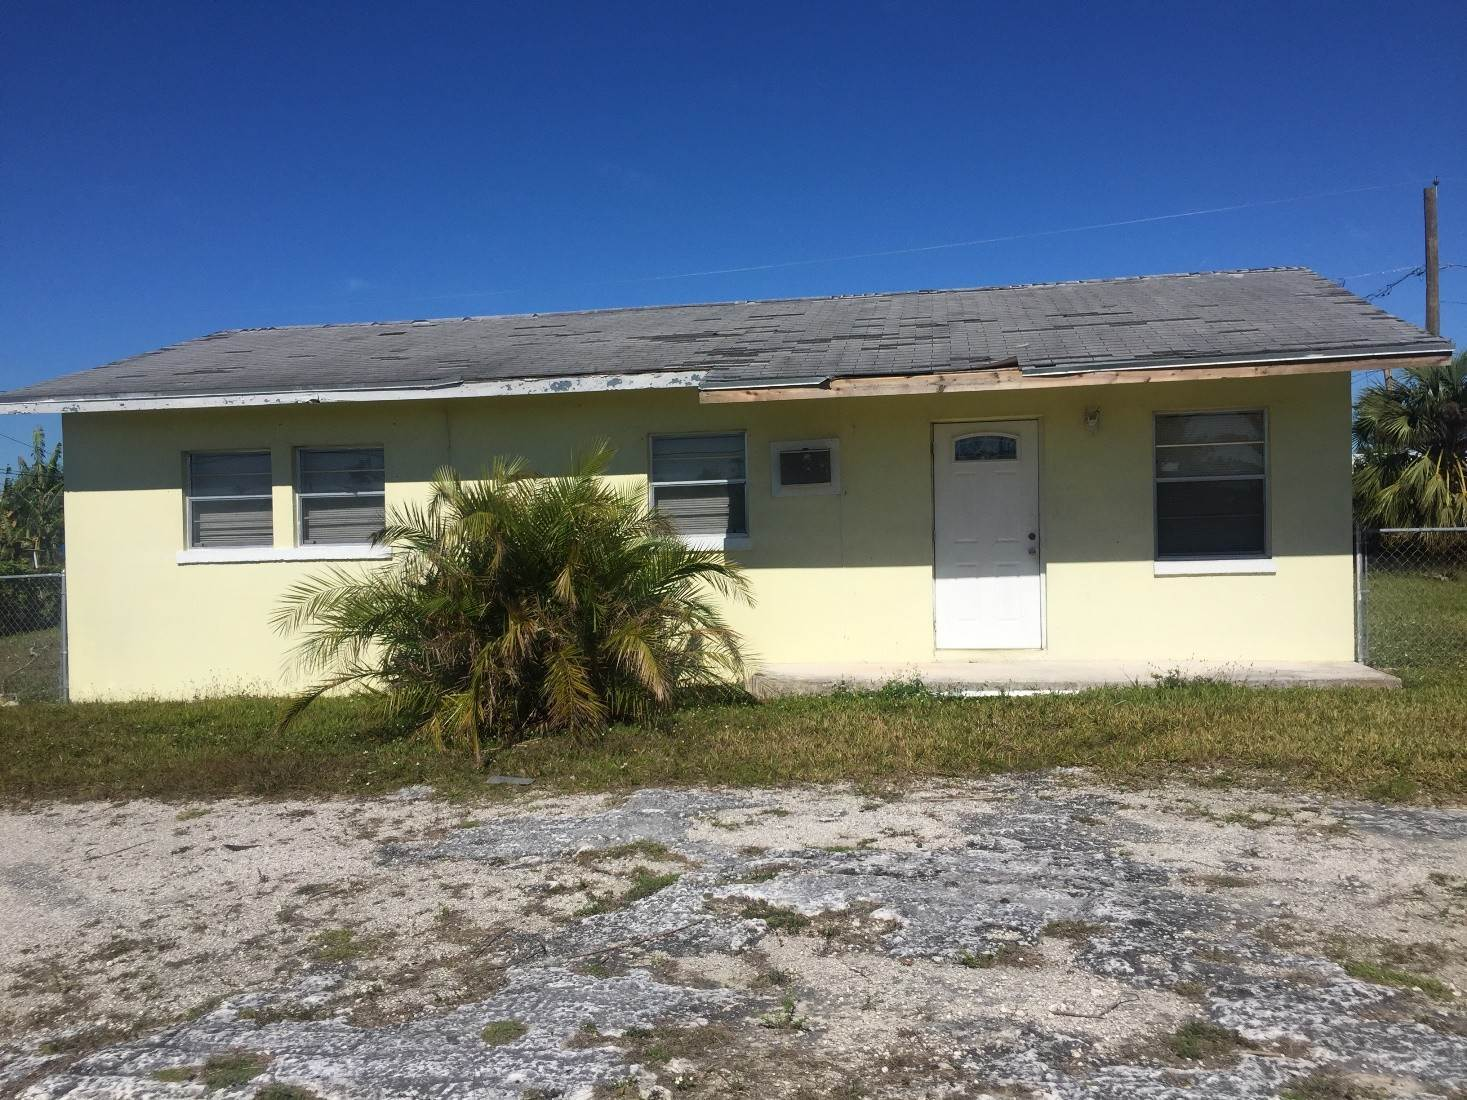 Single Family Homes for Sale at Single Family Home Explorer Way Downtown Freeport, Freeport And Grand Bahama, Bahamas